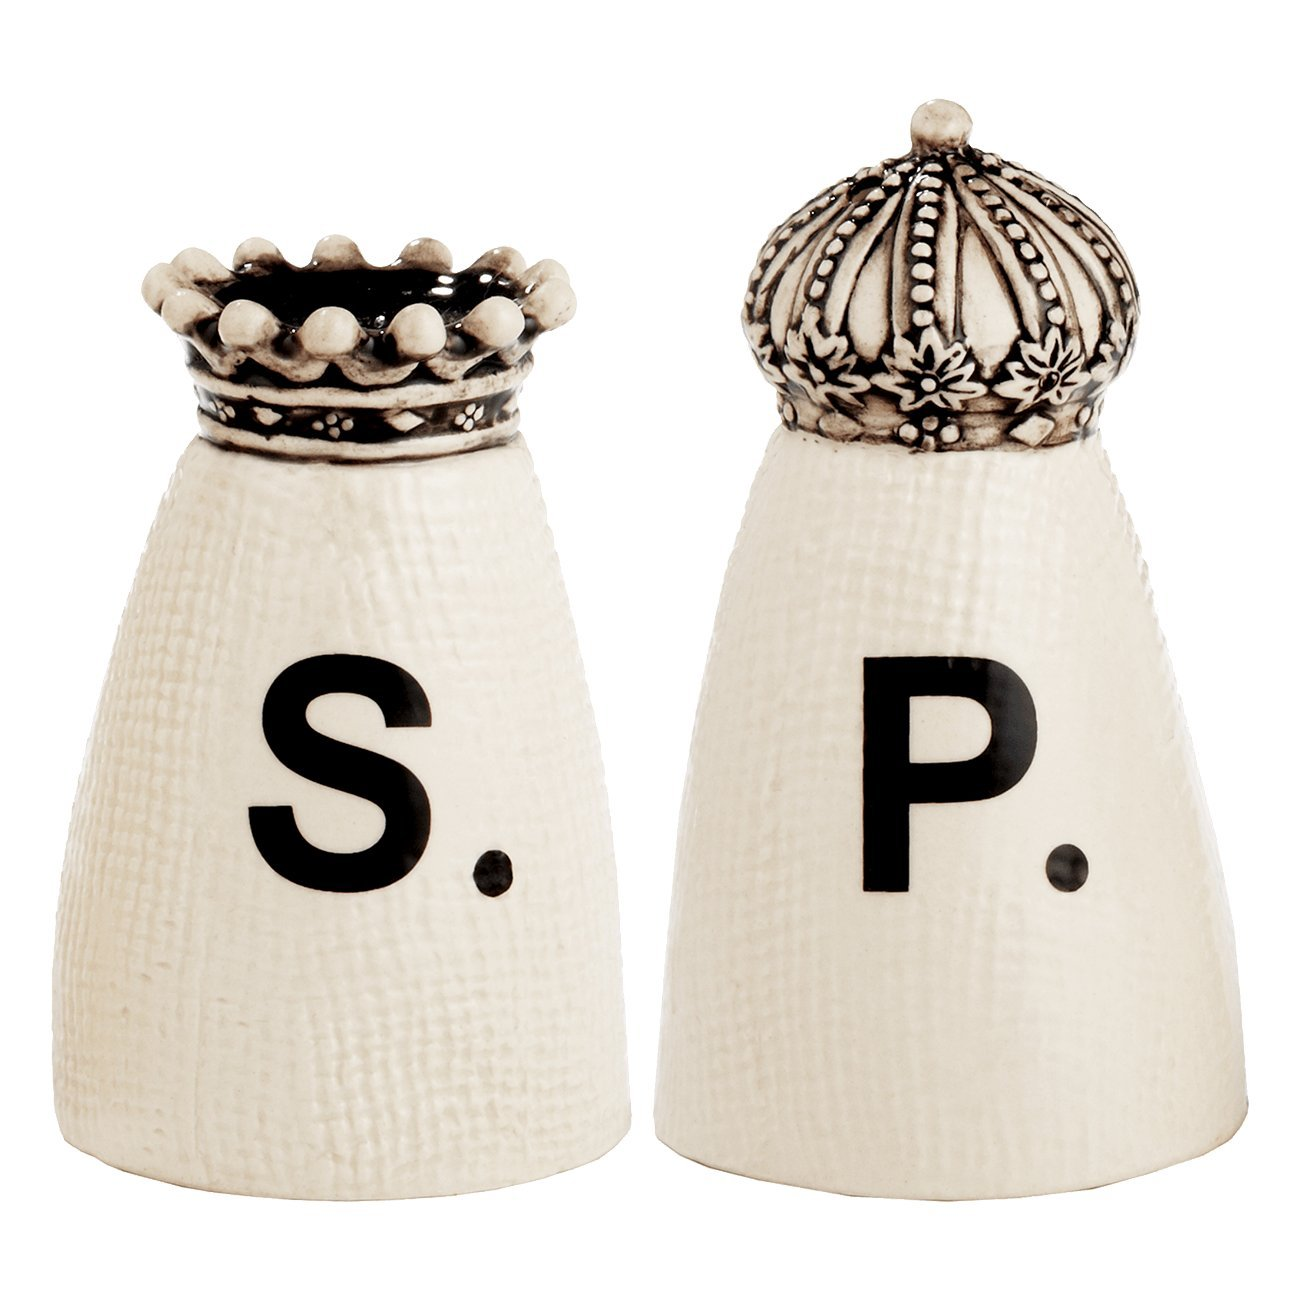 RAE DUNN Crown Salt + Pepper Shakers by Rae Dunn